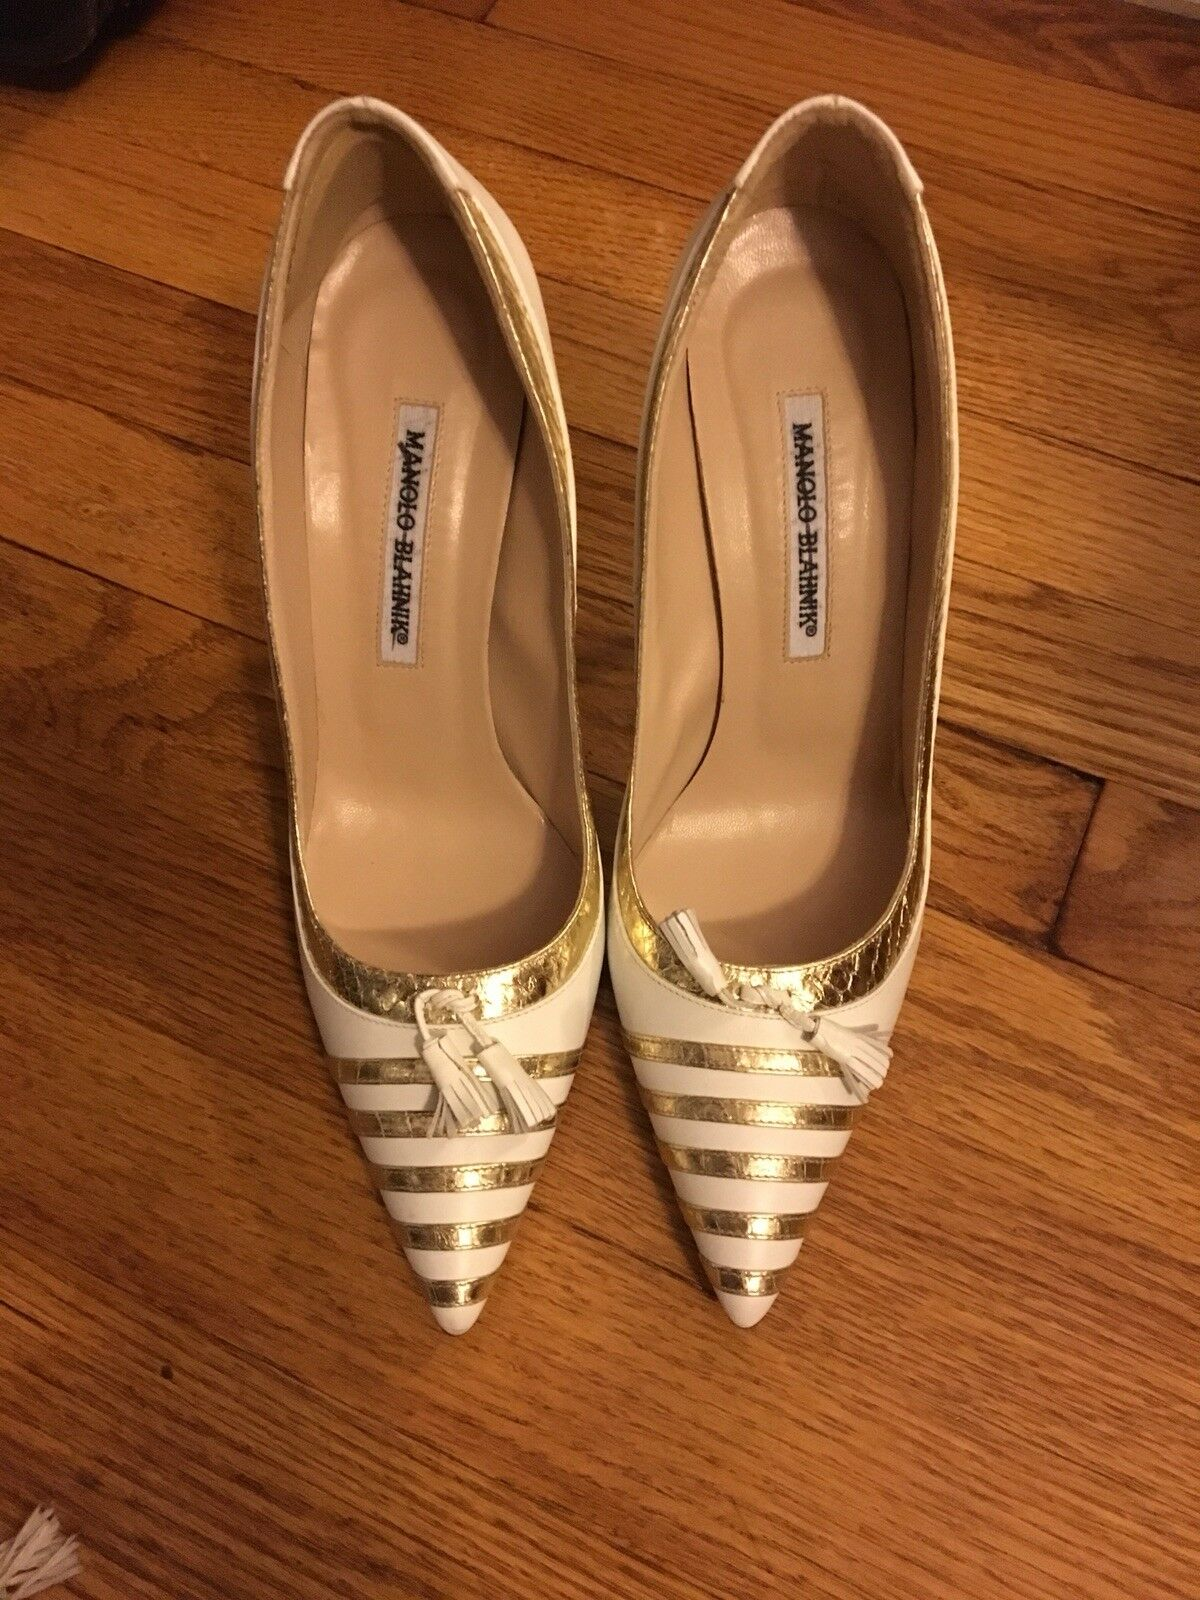 MANOLO BLAHNIK Weiß Gold LEATHER EMBOSSED TASSEL HEELS PUMPS STILETTOS 39 8.5 9